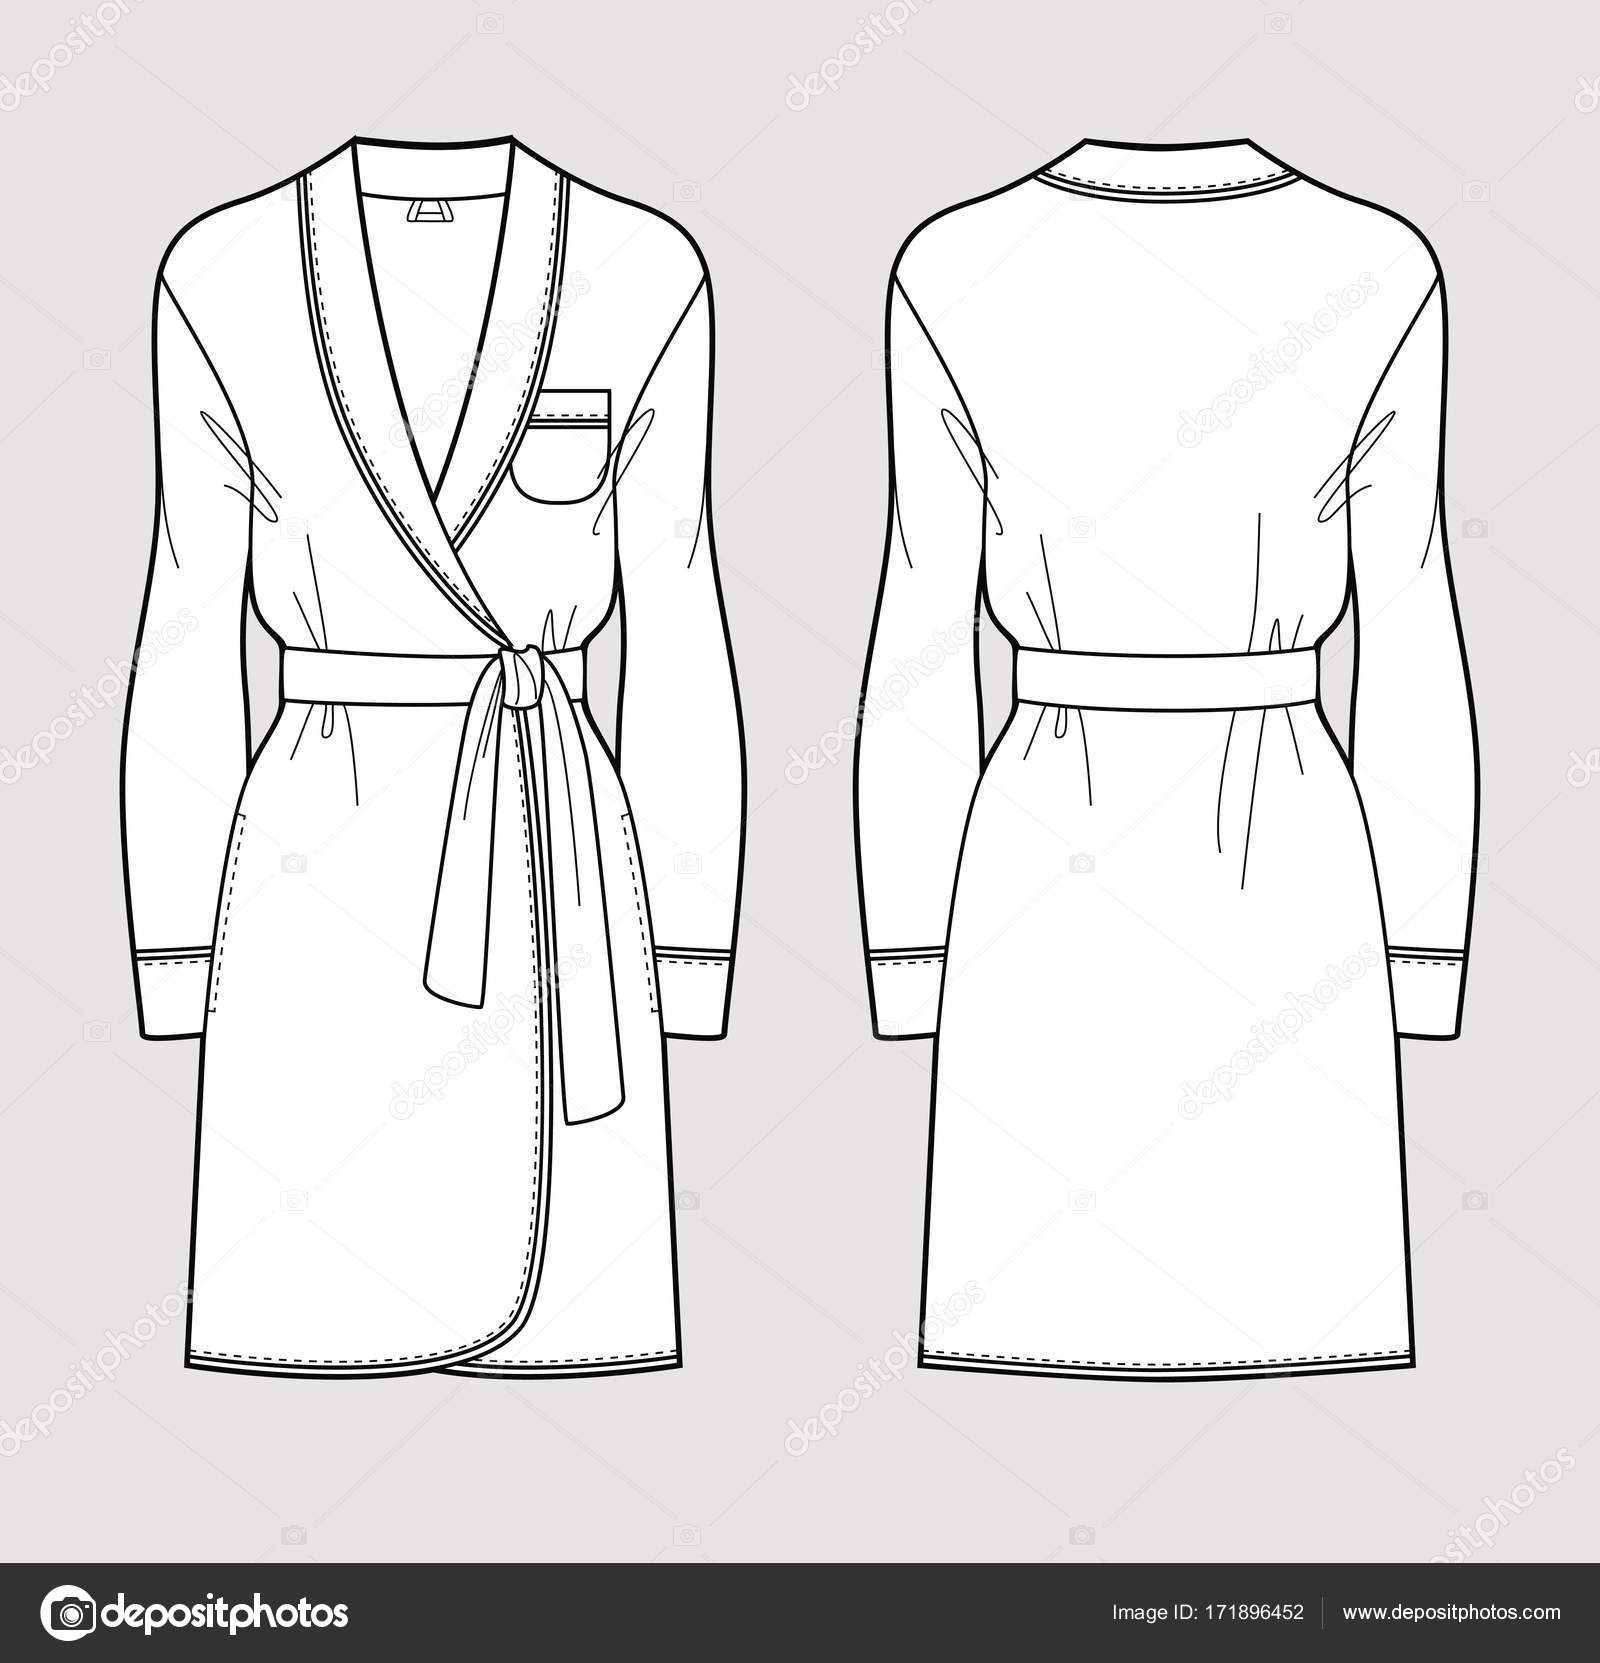 Silk Bathrobe For Women Isolated Vector Front And Back Views Vector Image By C Alushka Vector Stock 171896452